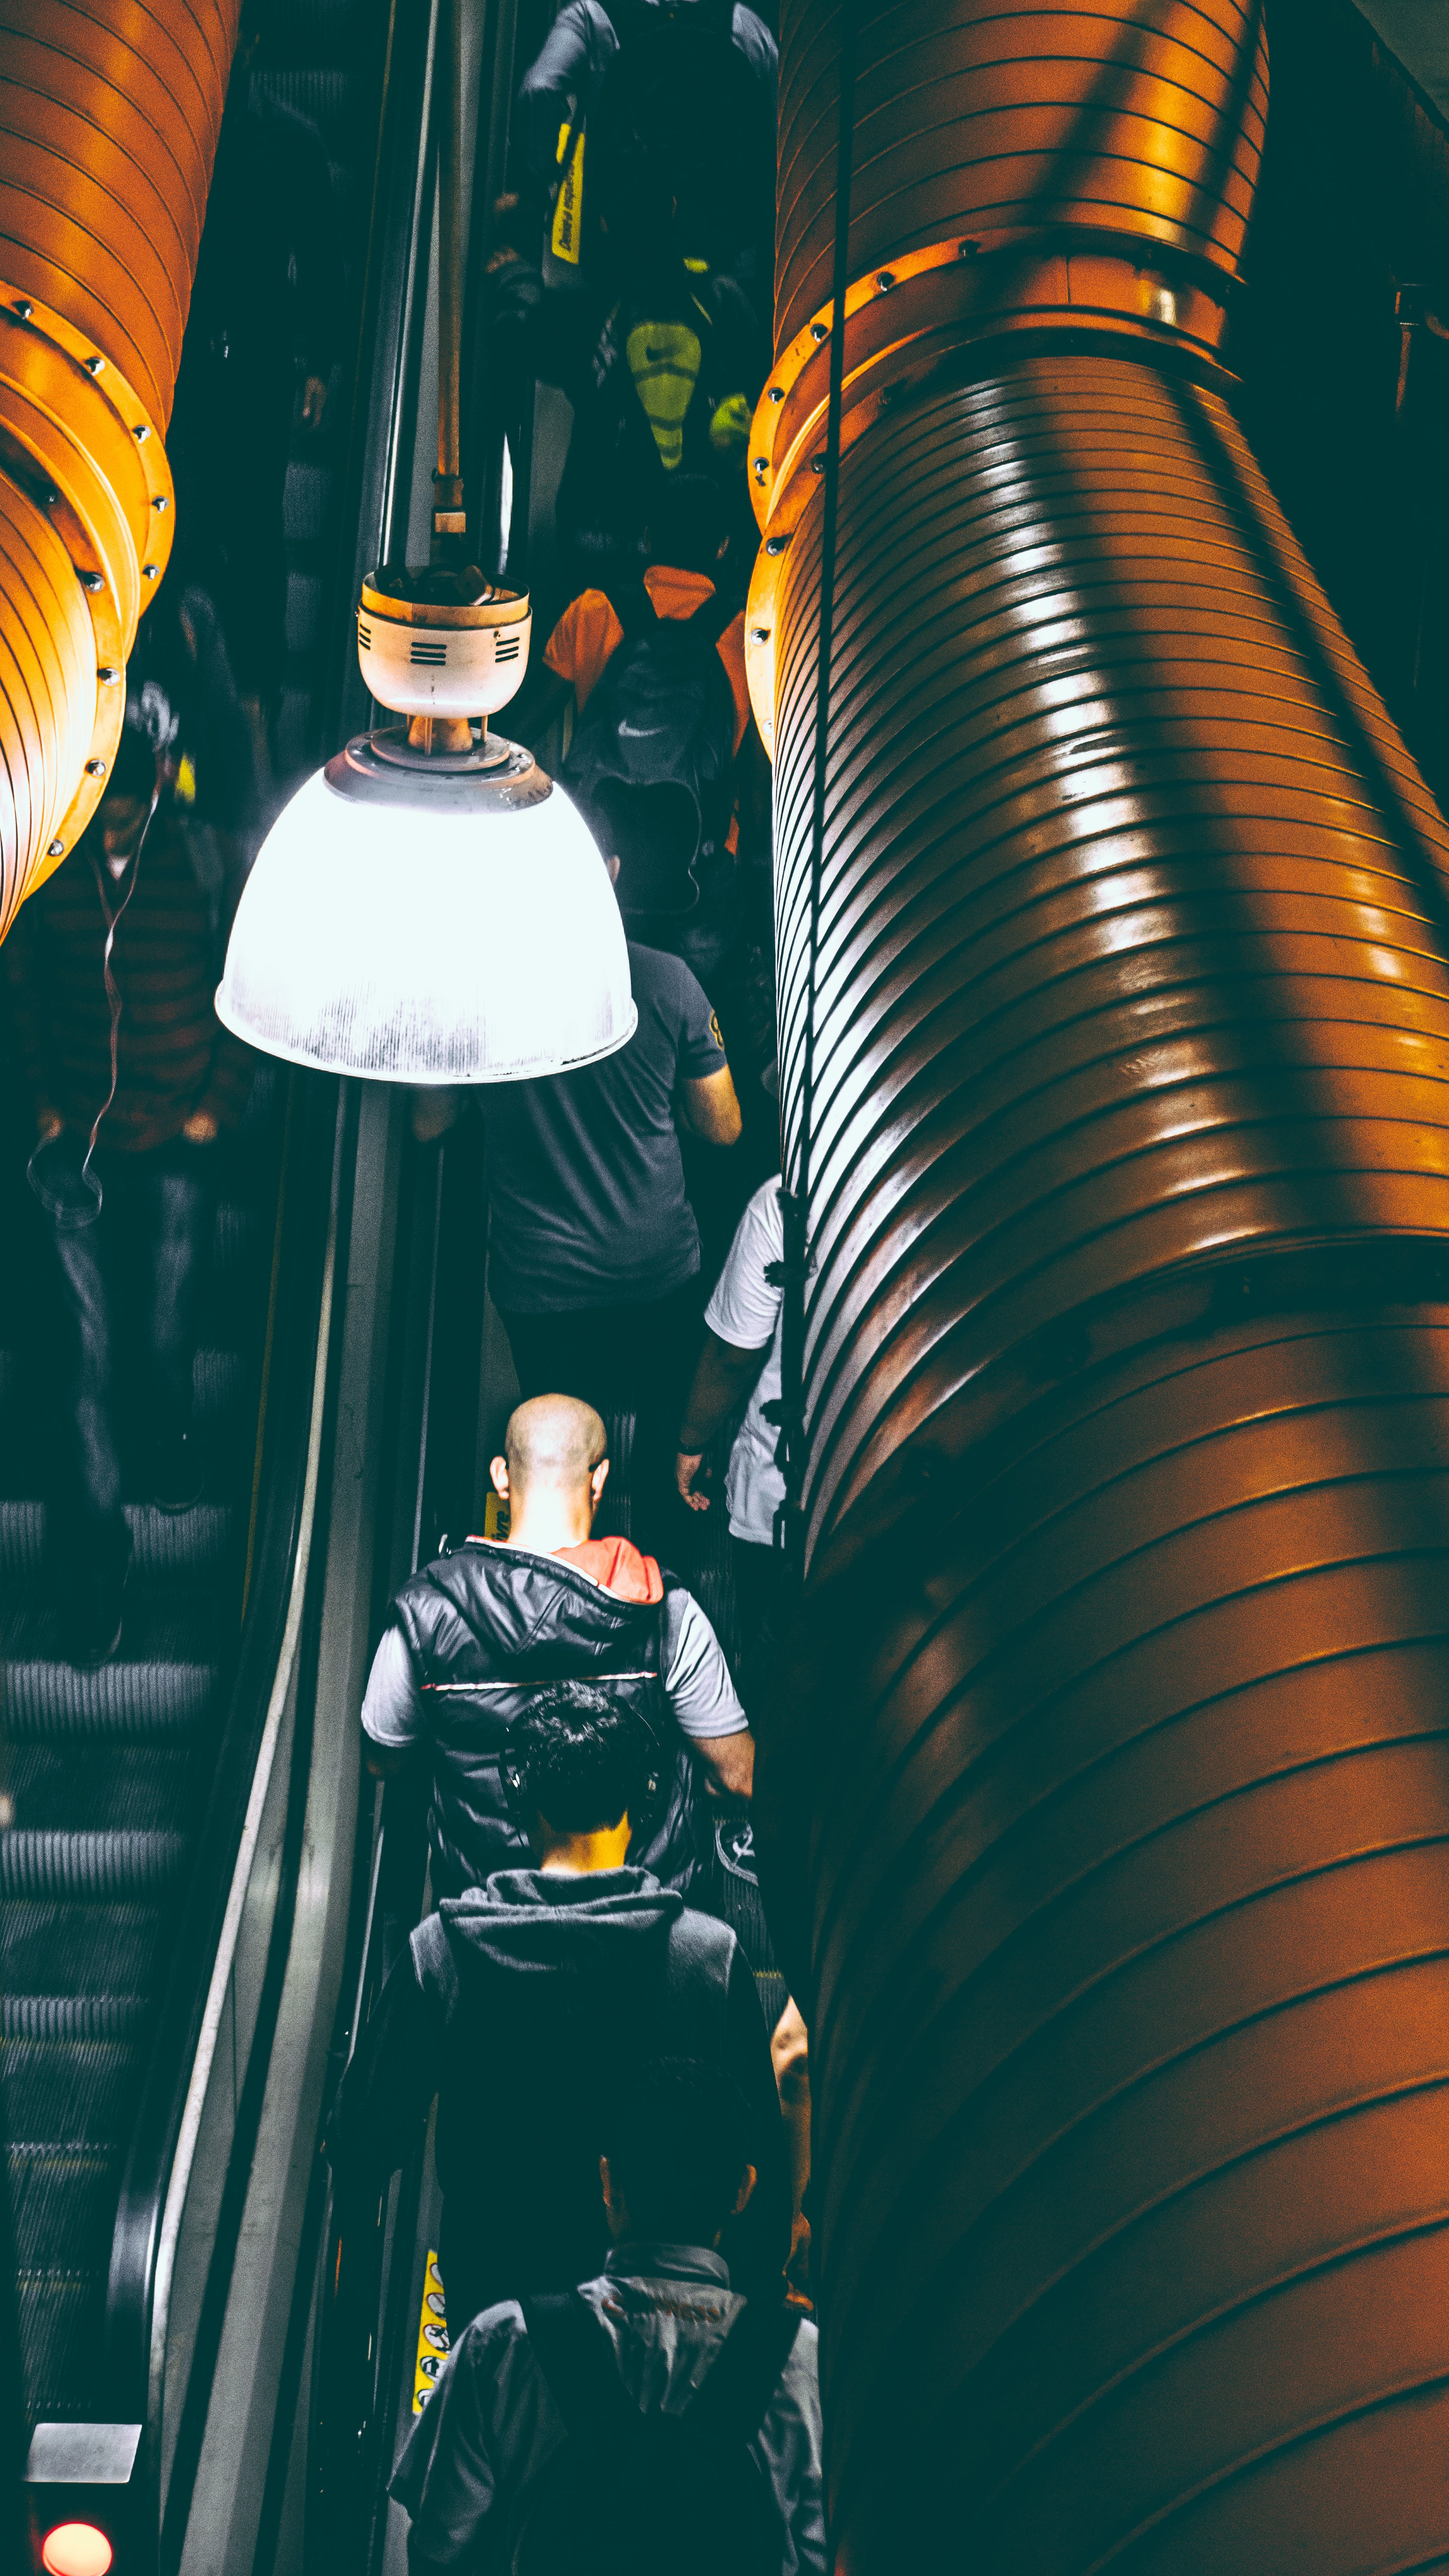 Photo of People Using Escalator Inside a Building